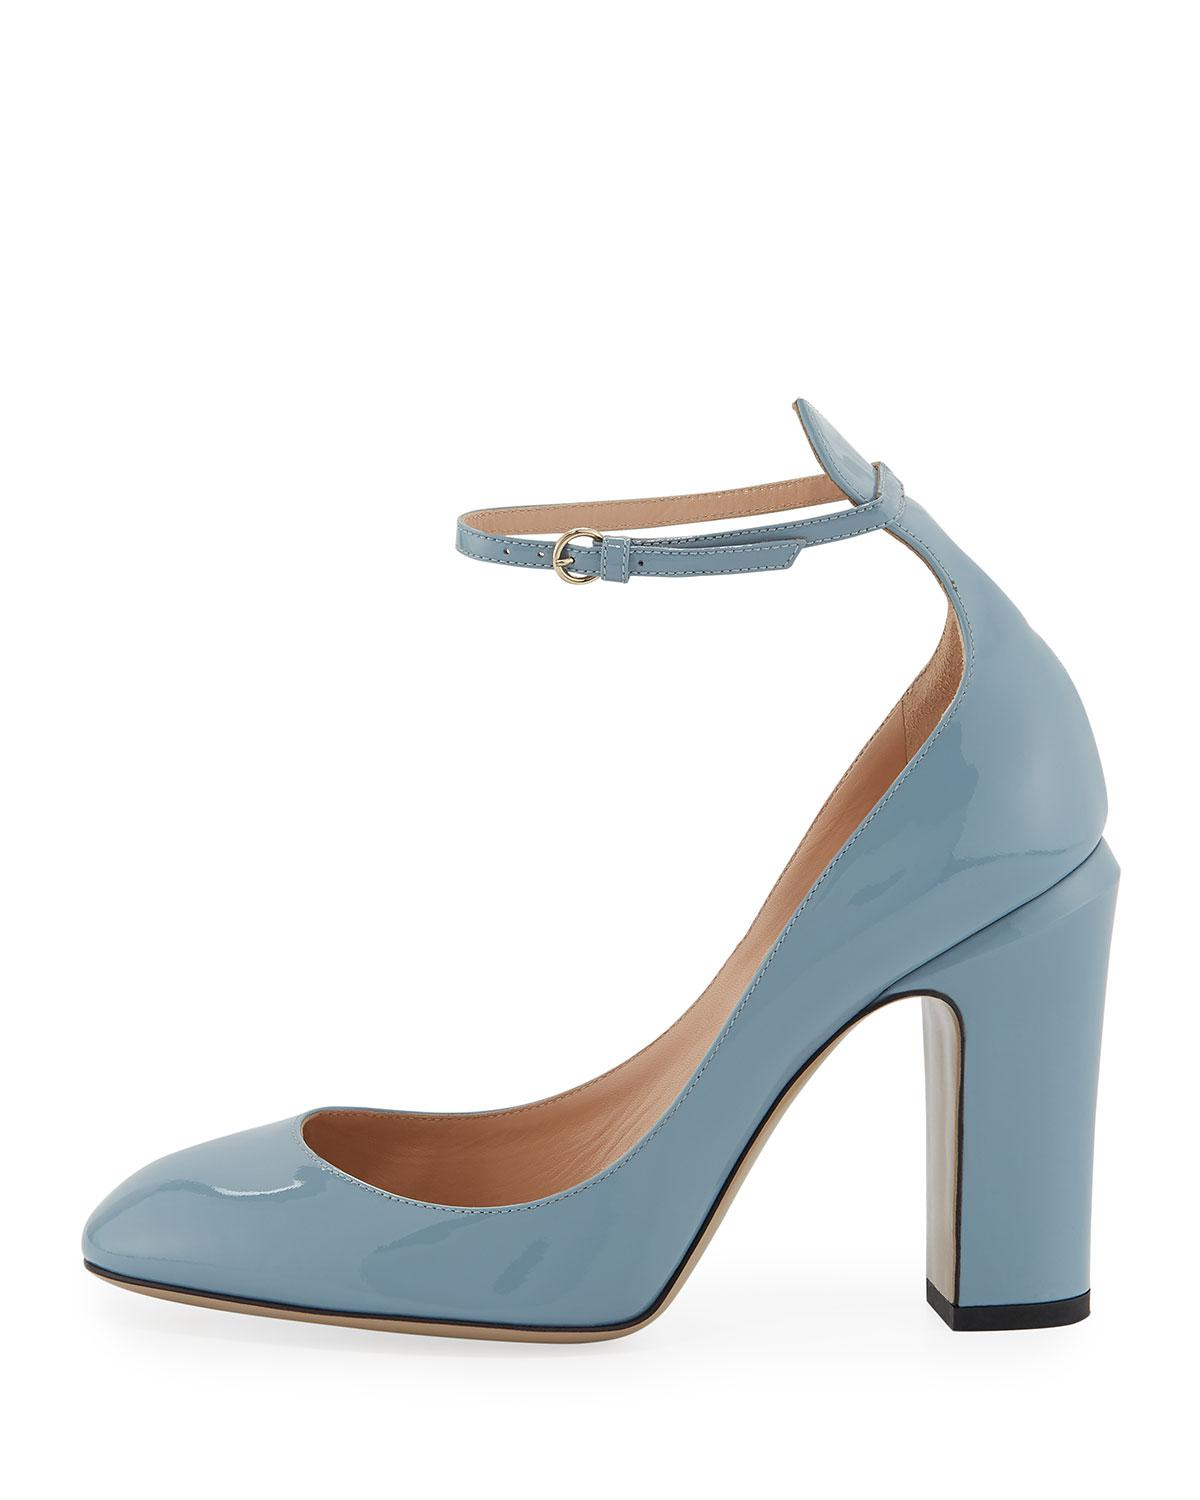 dc989b79419 Lyst - Valentino Patent Leather Ankle-strap Pumps in Blue